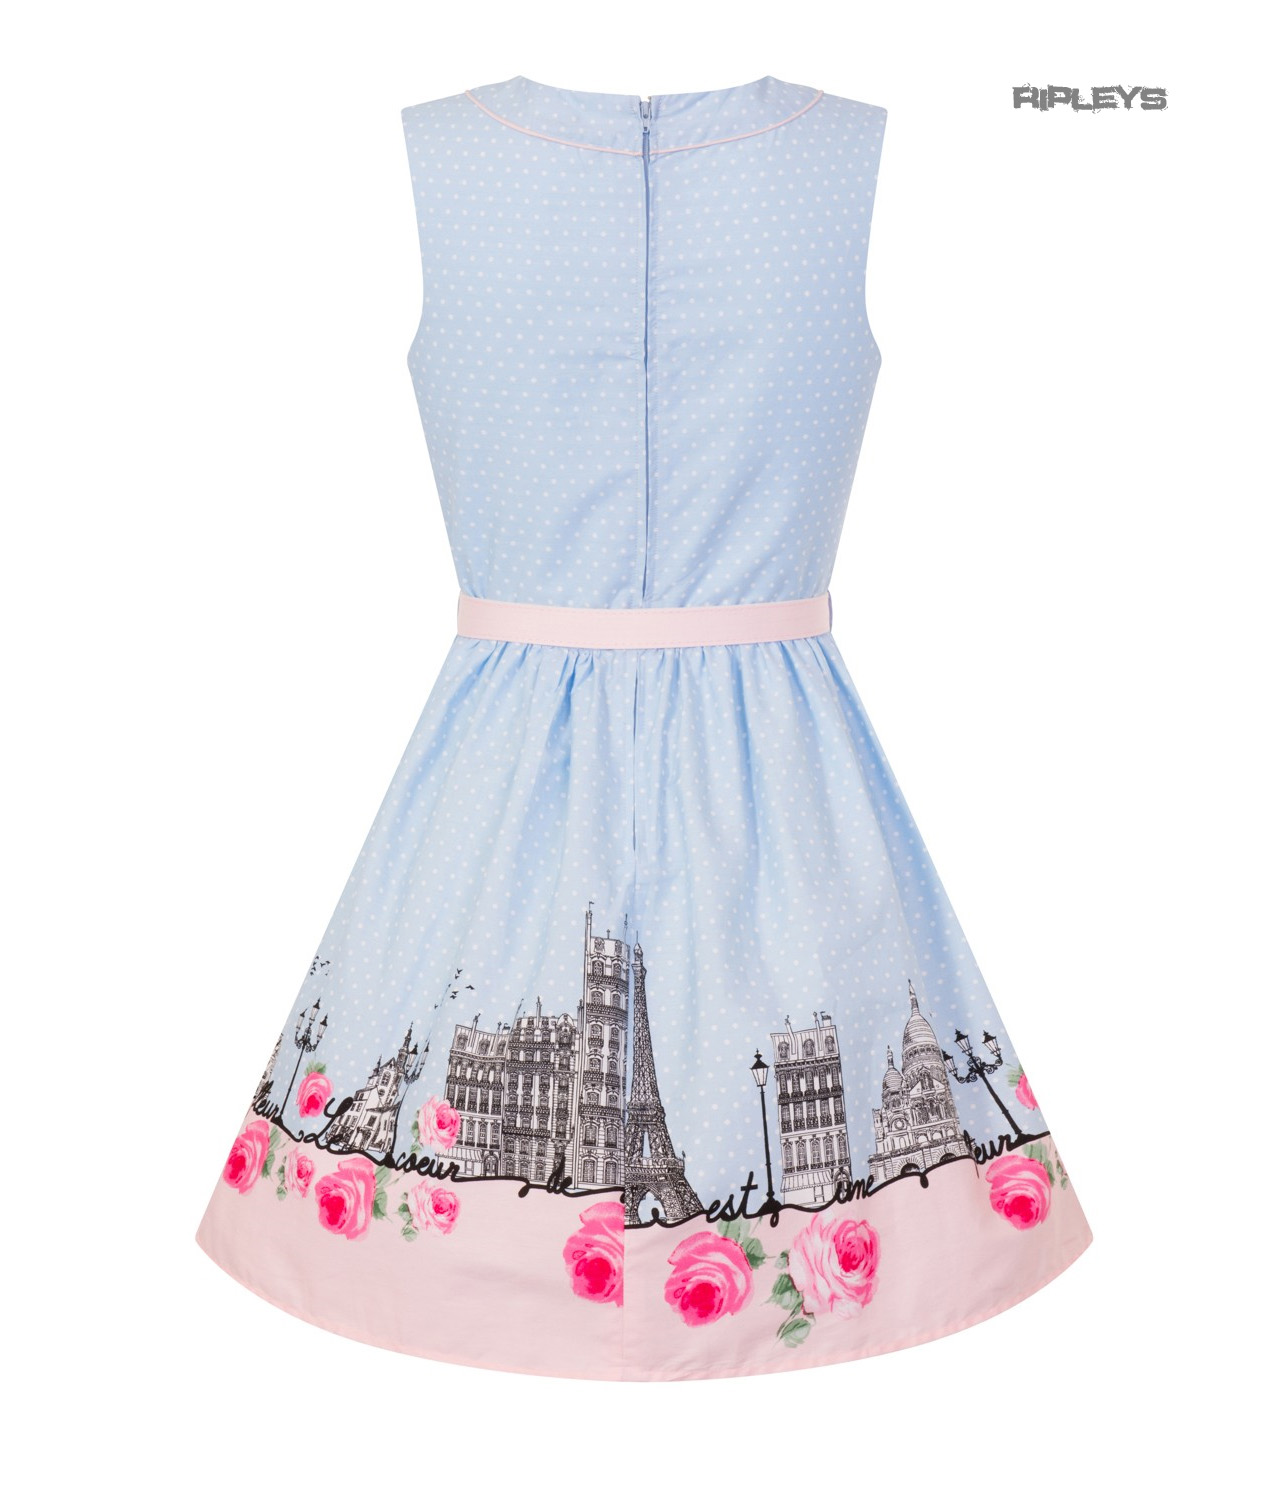 Hell-Bunny-50s-Vintage-Blue-Polka-Dot-PANAME-Mini-Dress-Paris-All-Sizes thumbnail 24